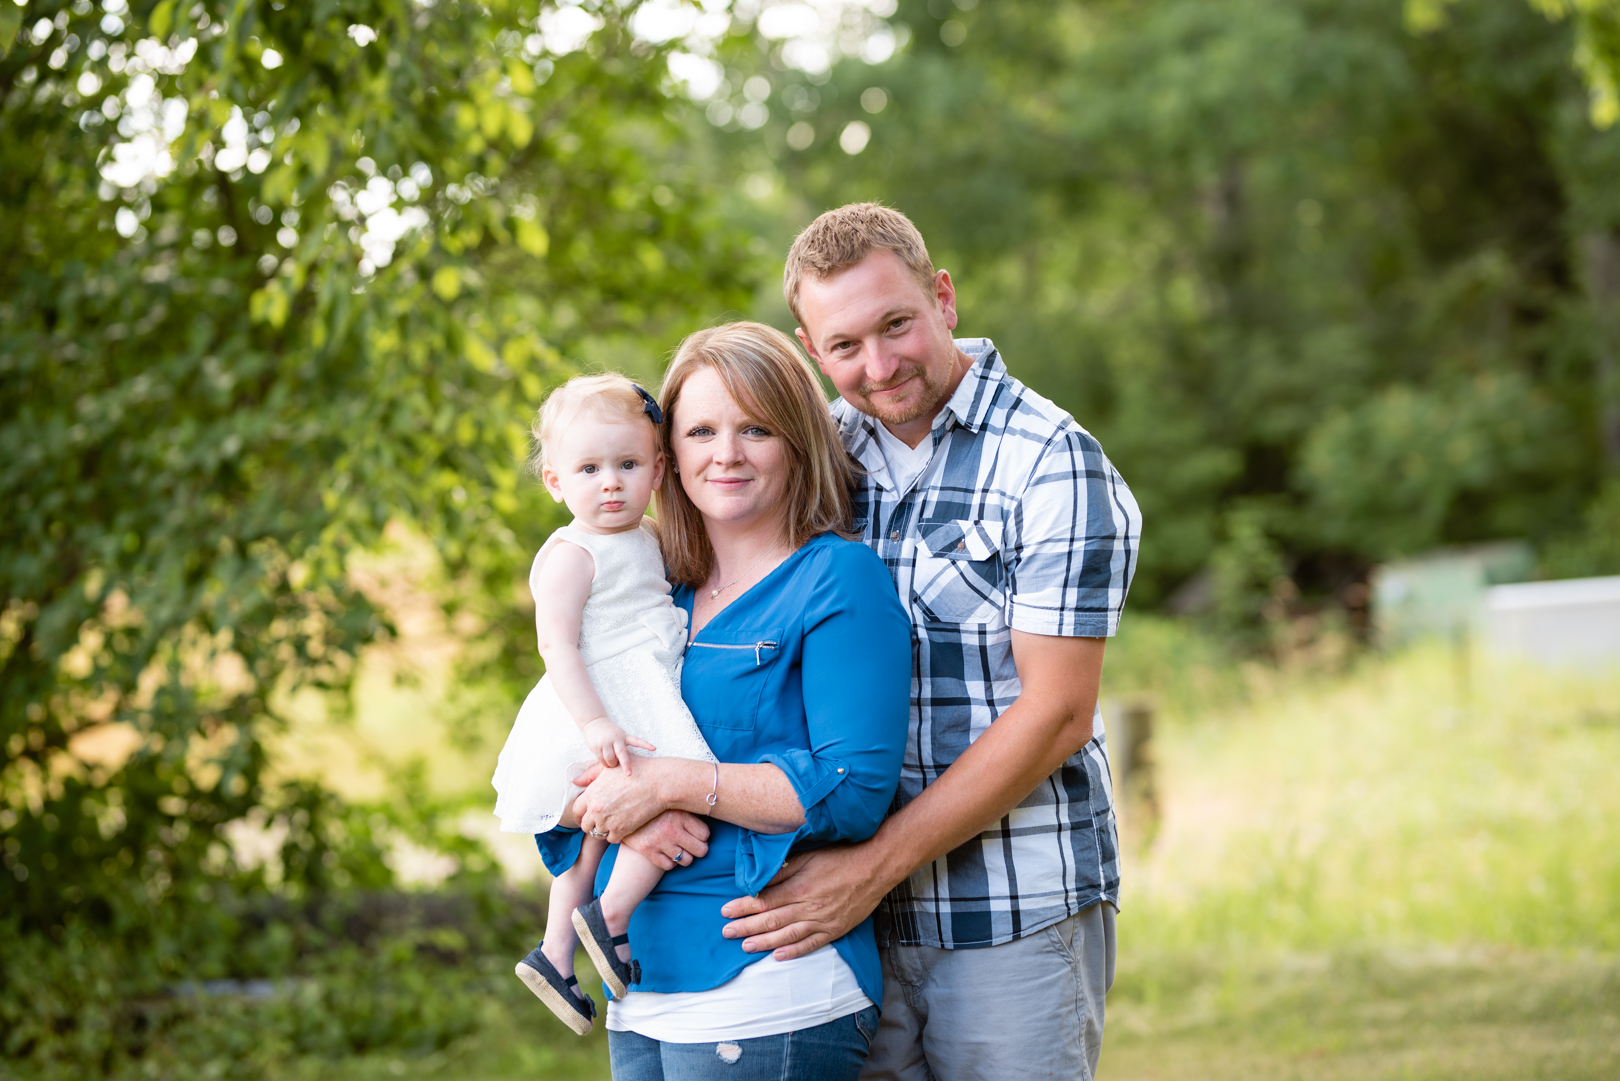 18Peterborough Photography Family Photography Naomi Lucienne072019.jpg